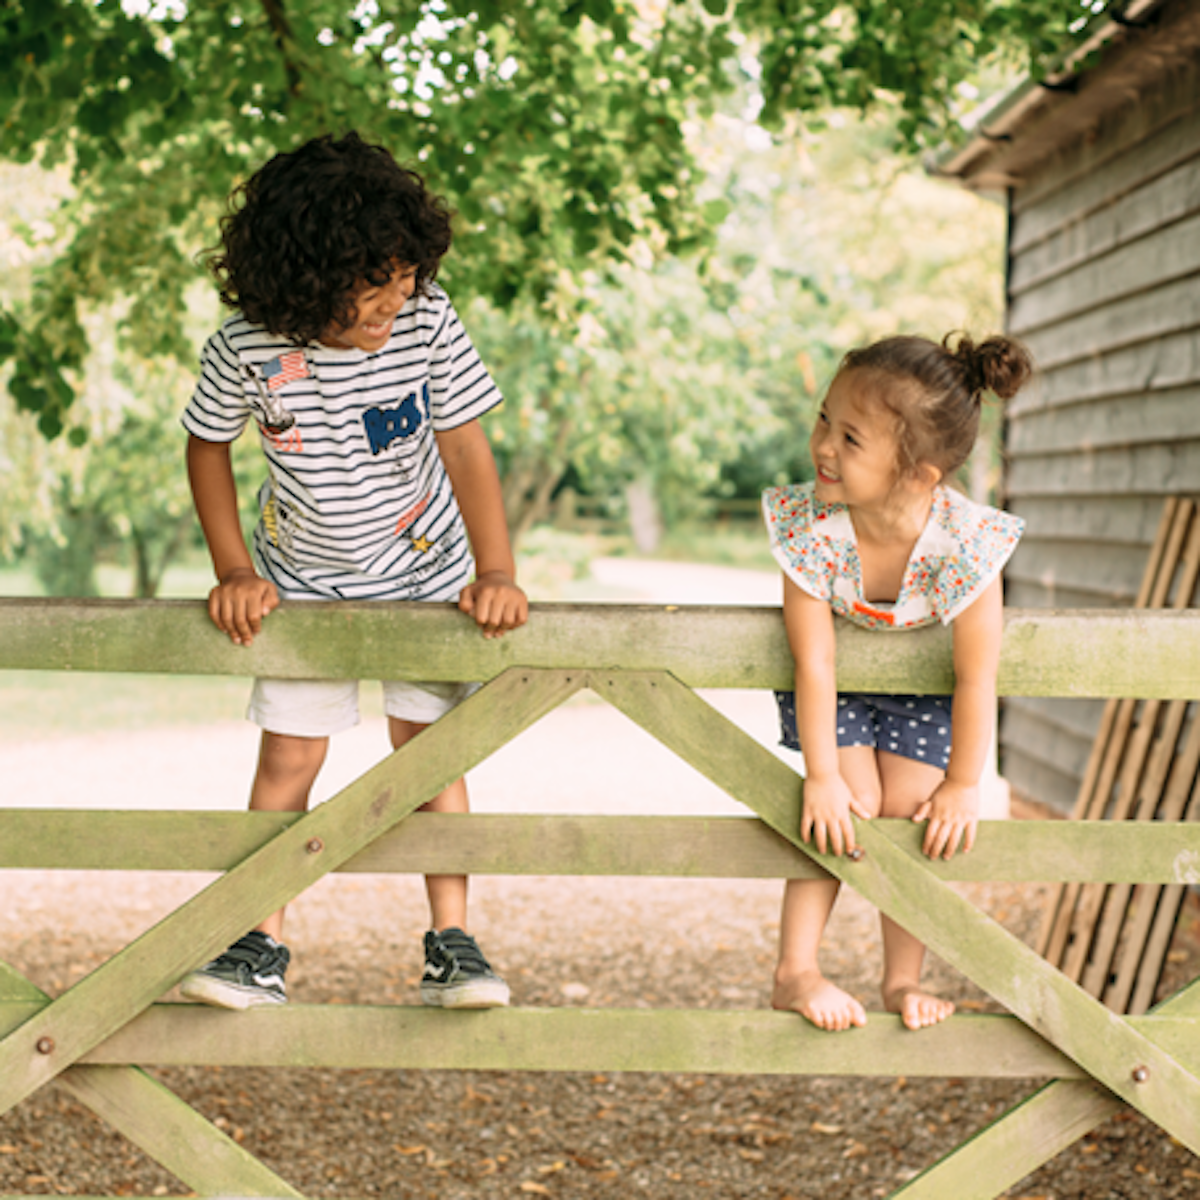 Two children playing o a wooden fence outside.